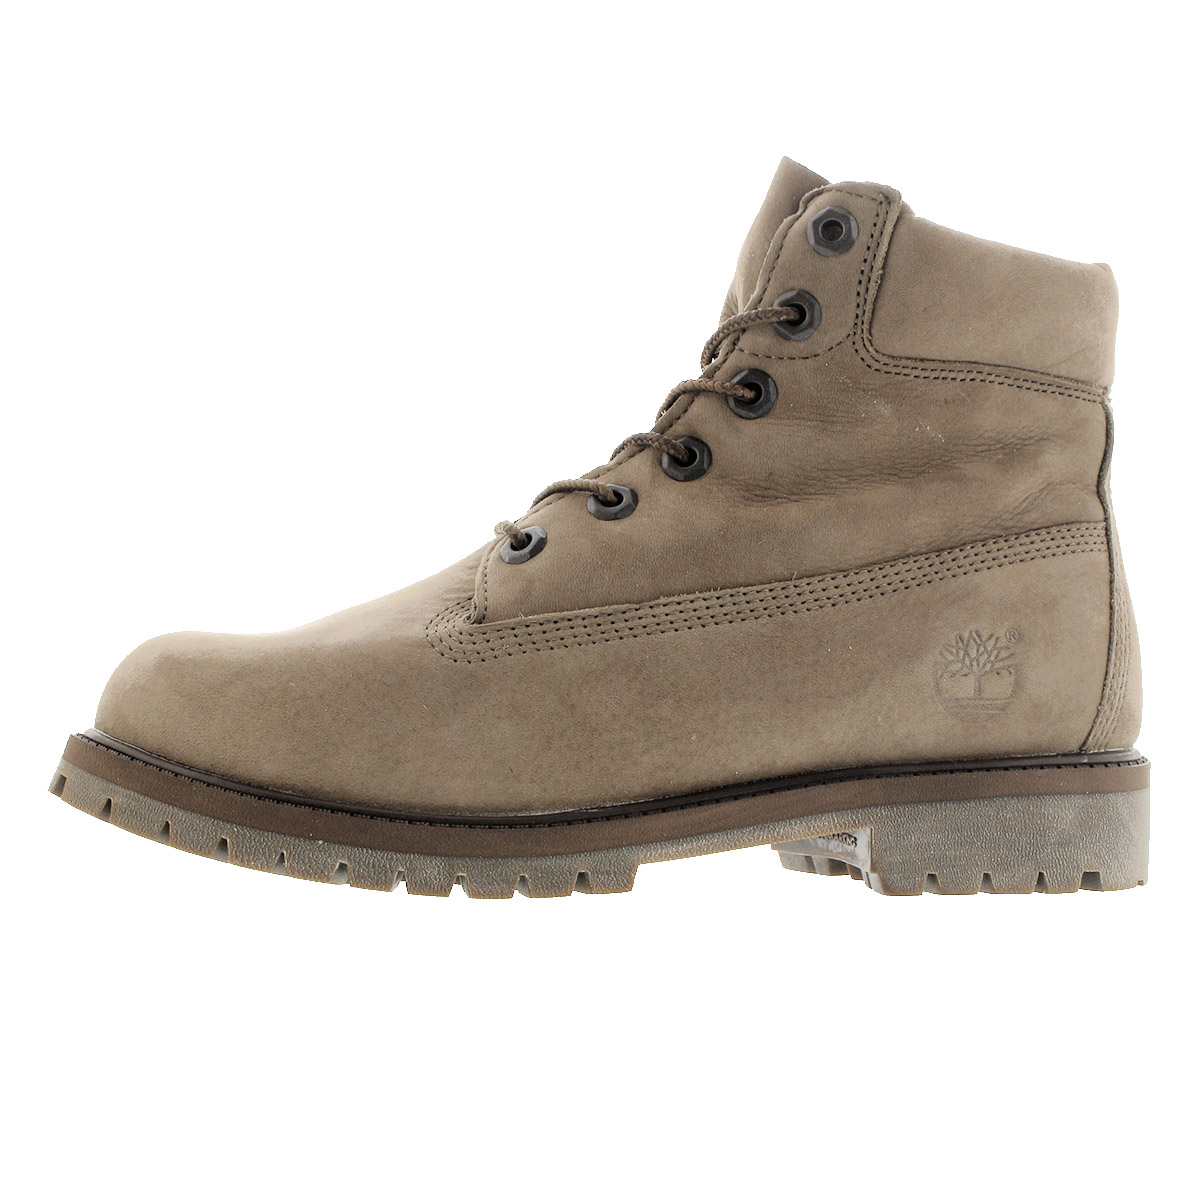 6 inches of TIMBERLAND 6inch PREMIUM WP BOOT Timberland premium waterproof boots OLIVE a294h